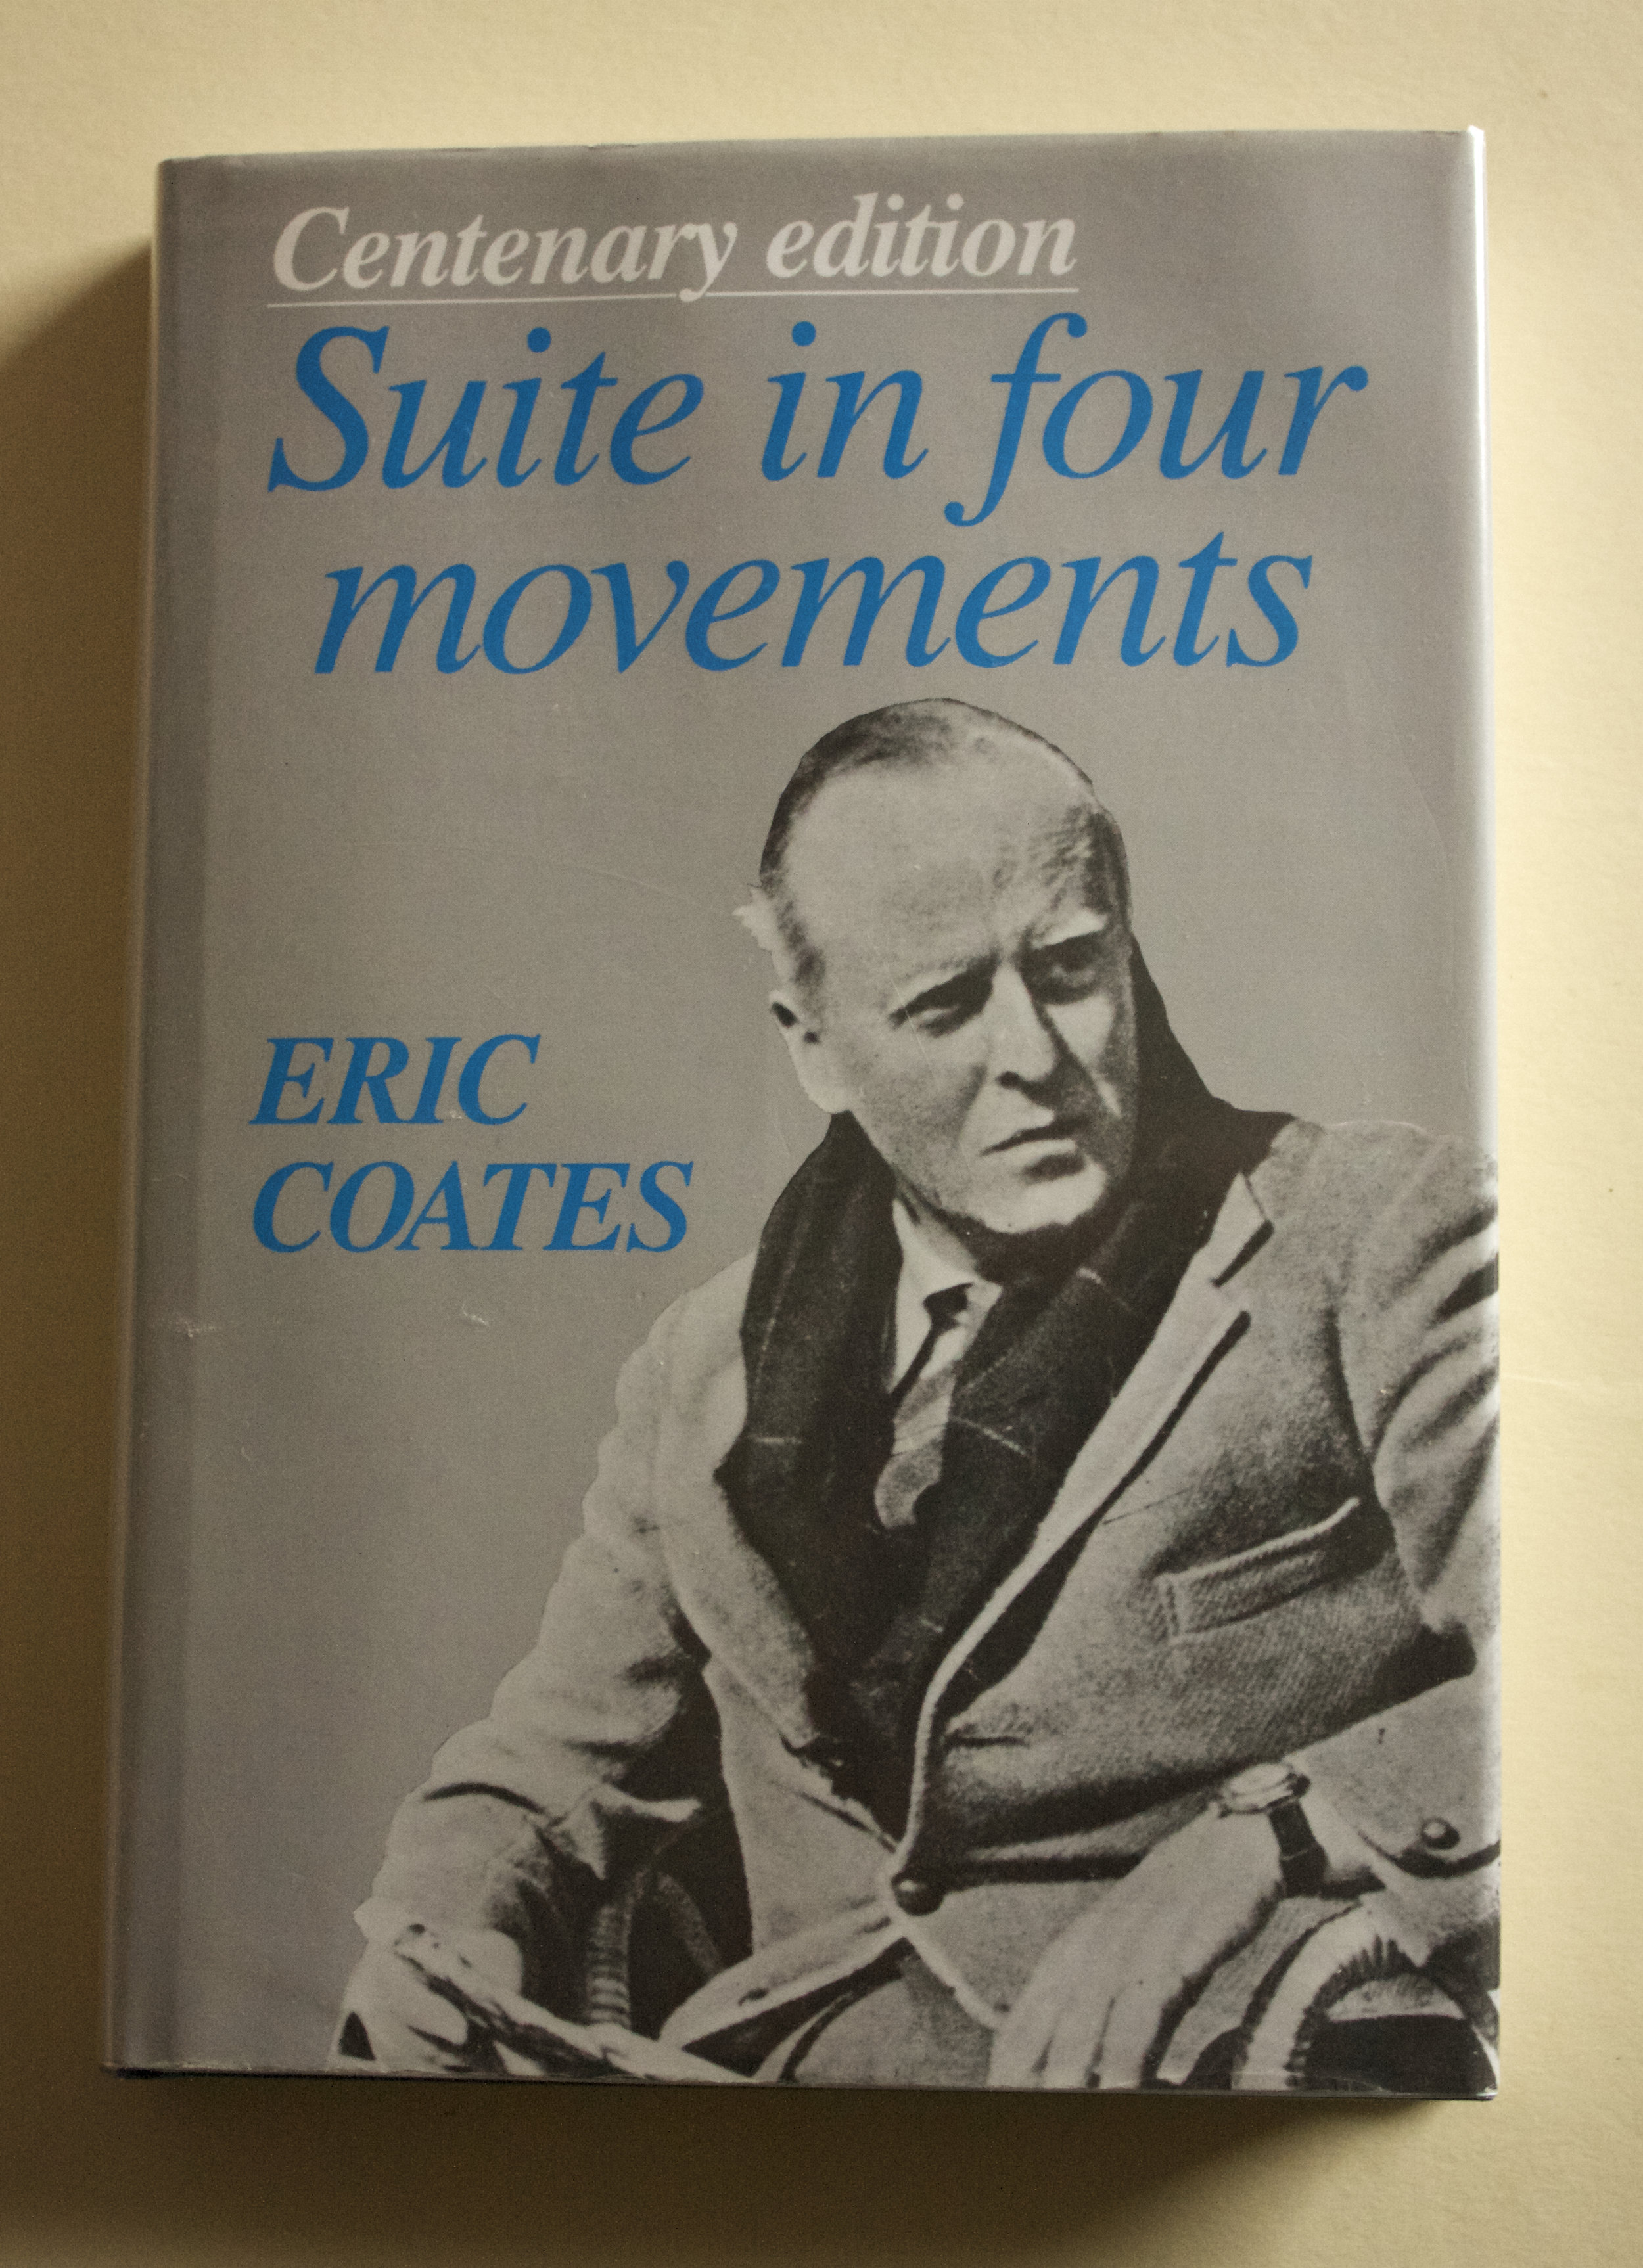 Copy of Suite in Four Movements (centenary edition) by Eric Coates (Thames Publishing, 1986)